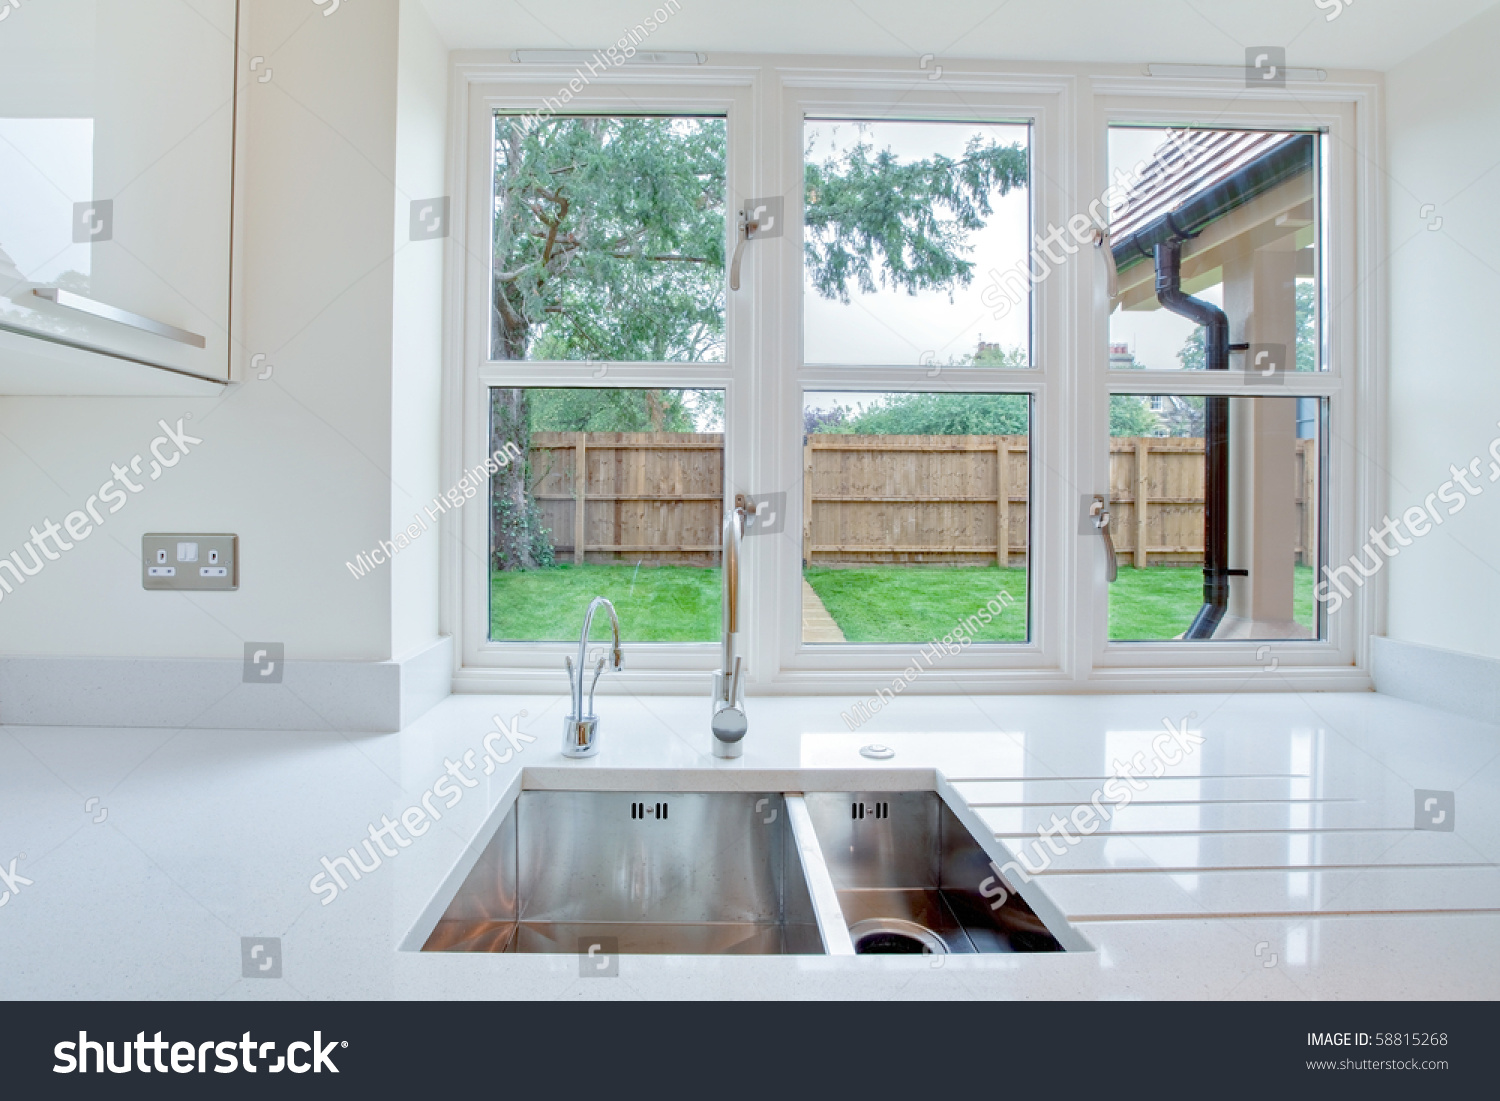 Kitchen Window Garden Window View Overlooking Garden Kitchen Sink Stock Photo 58815268